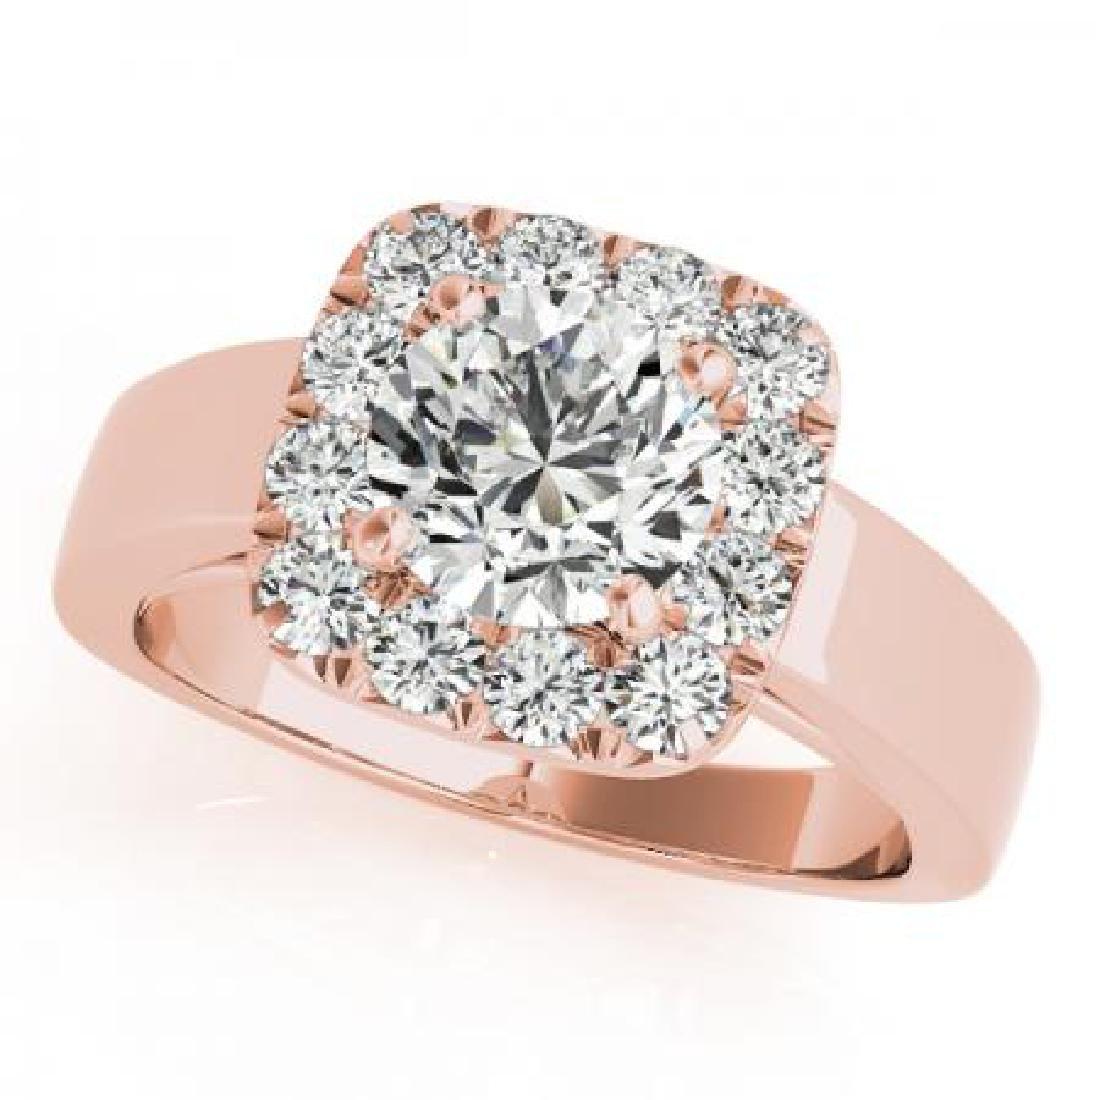 CERTIFIED 18K ROSE GOLD 1.08 CT G-H/VS-SI1 DIAMOND HALO